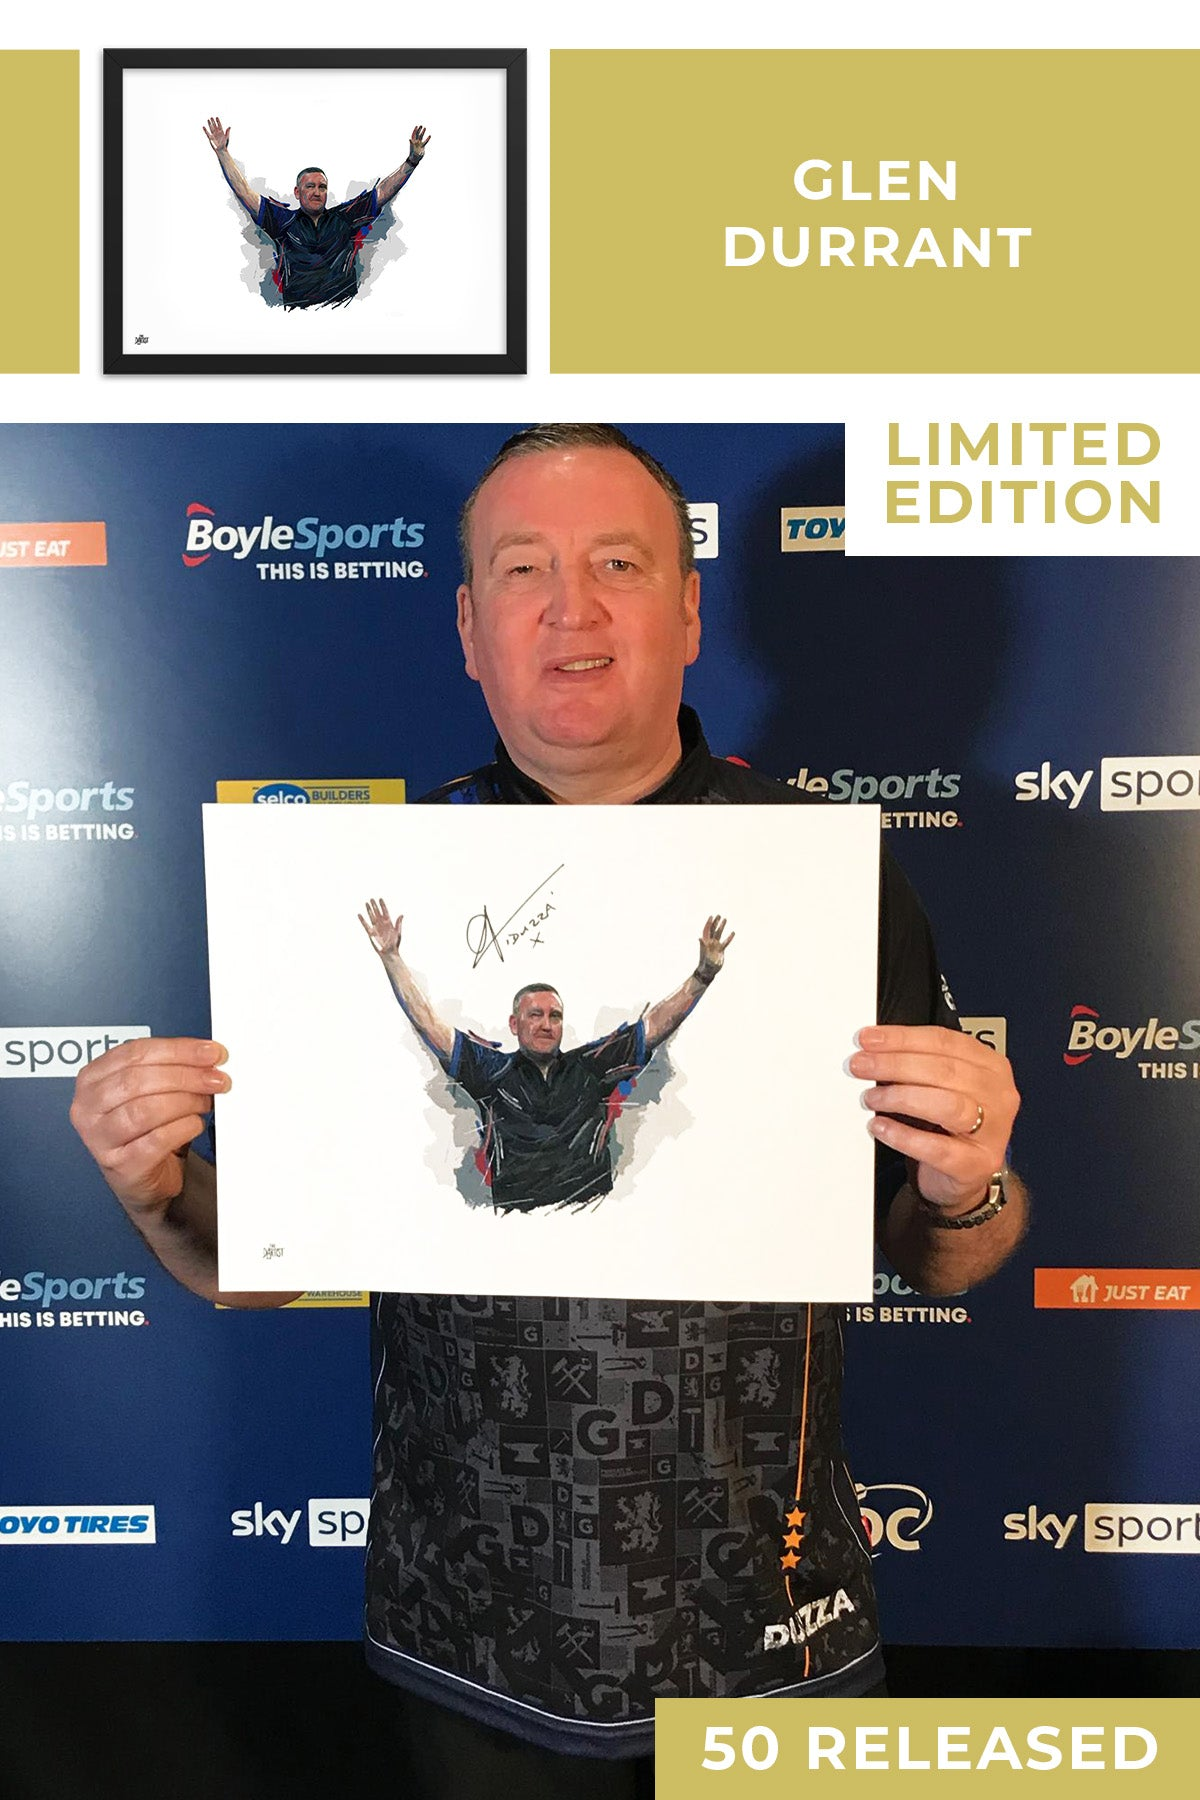 Glen Durrant Limited Edition Signed Art Print - The Dartist